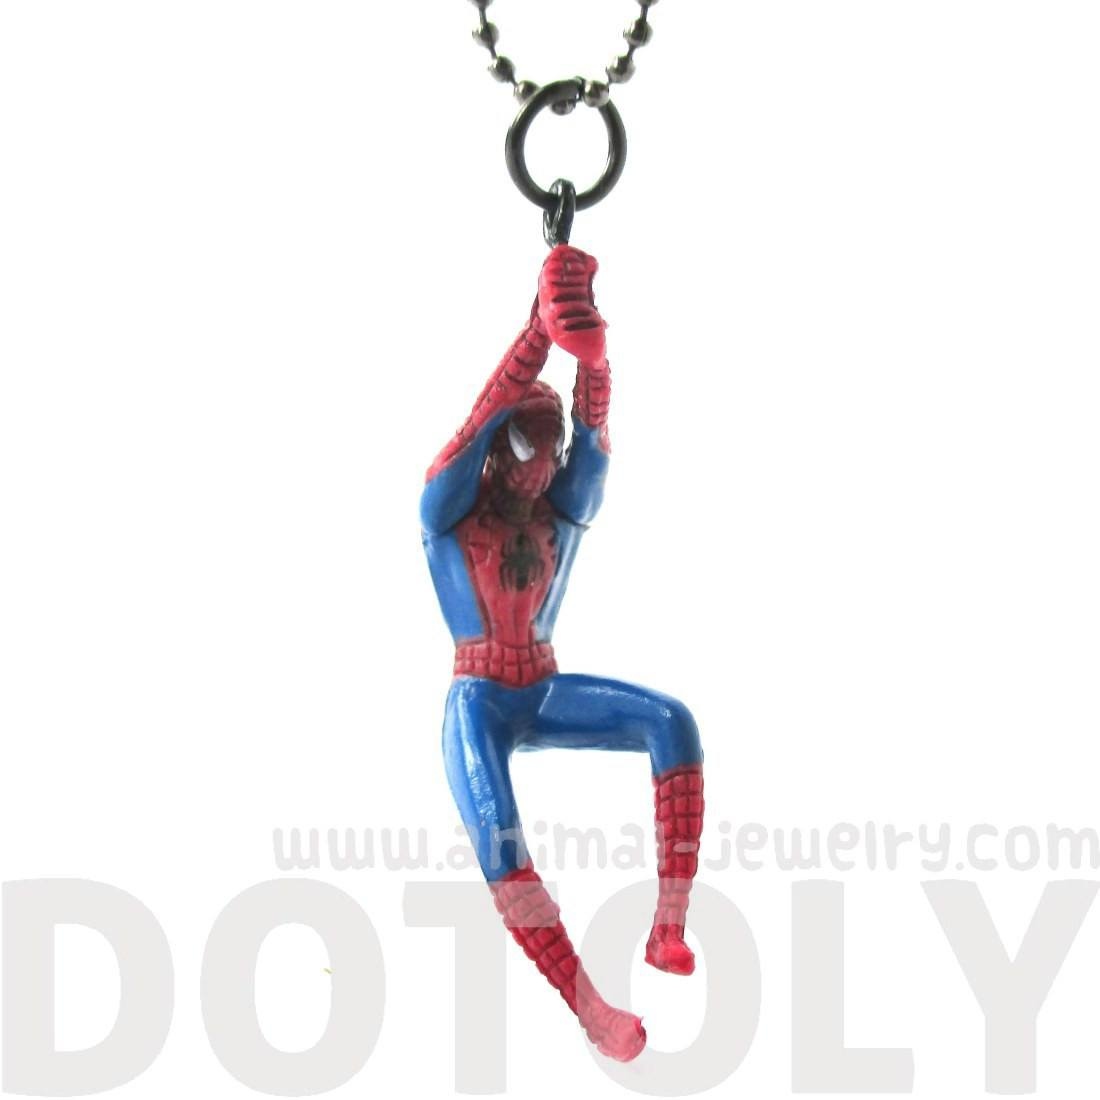 Realistic Swinging Spiderman Shaped Figurine Pendant Necklace